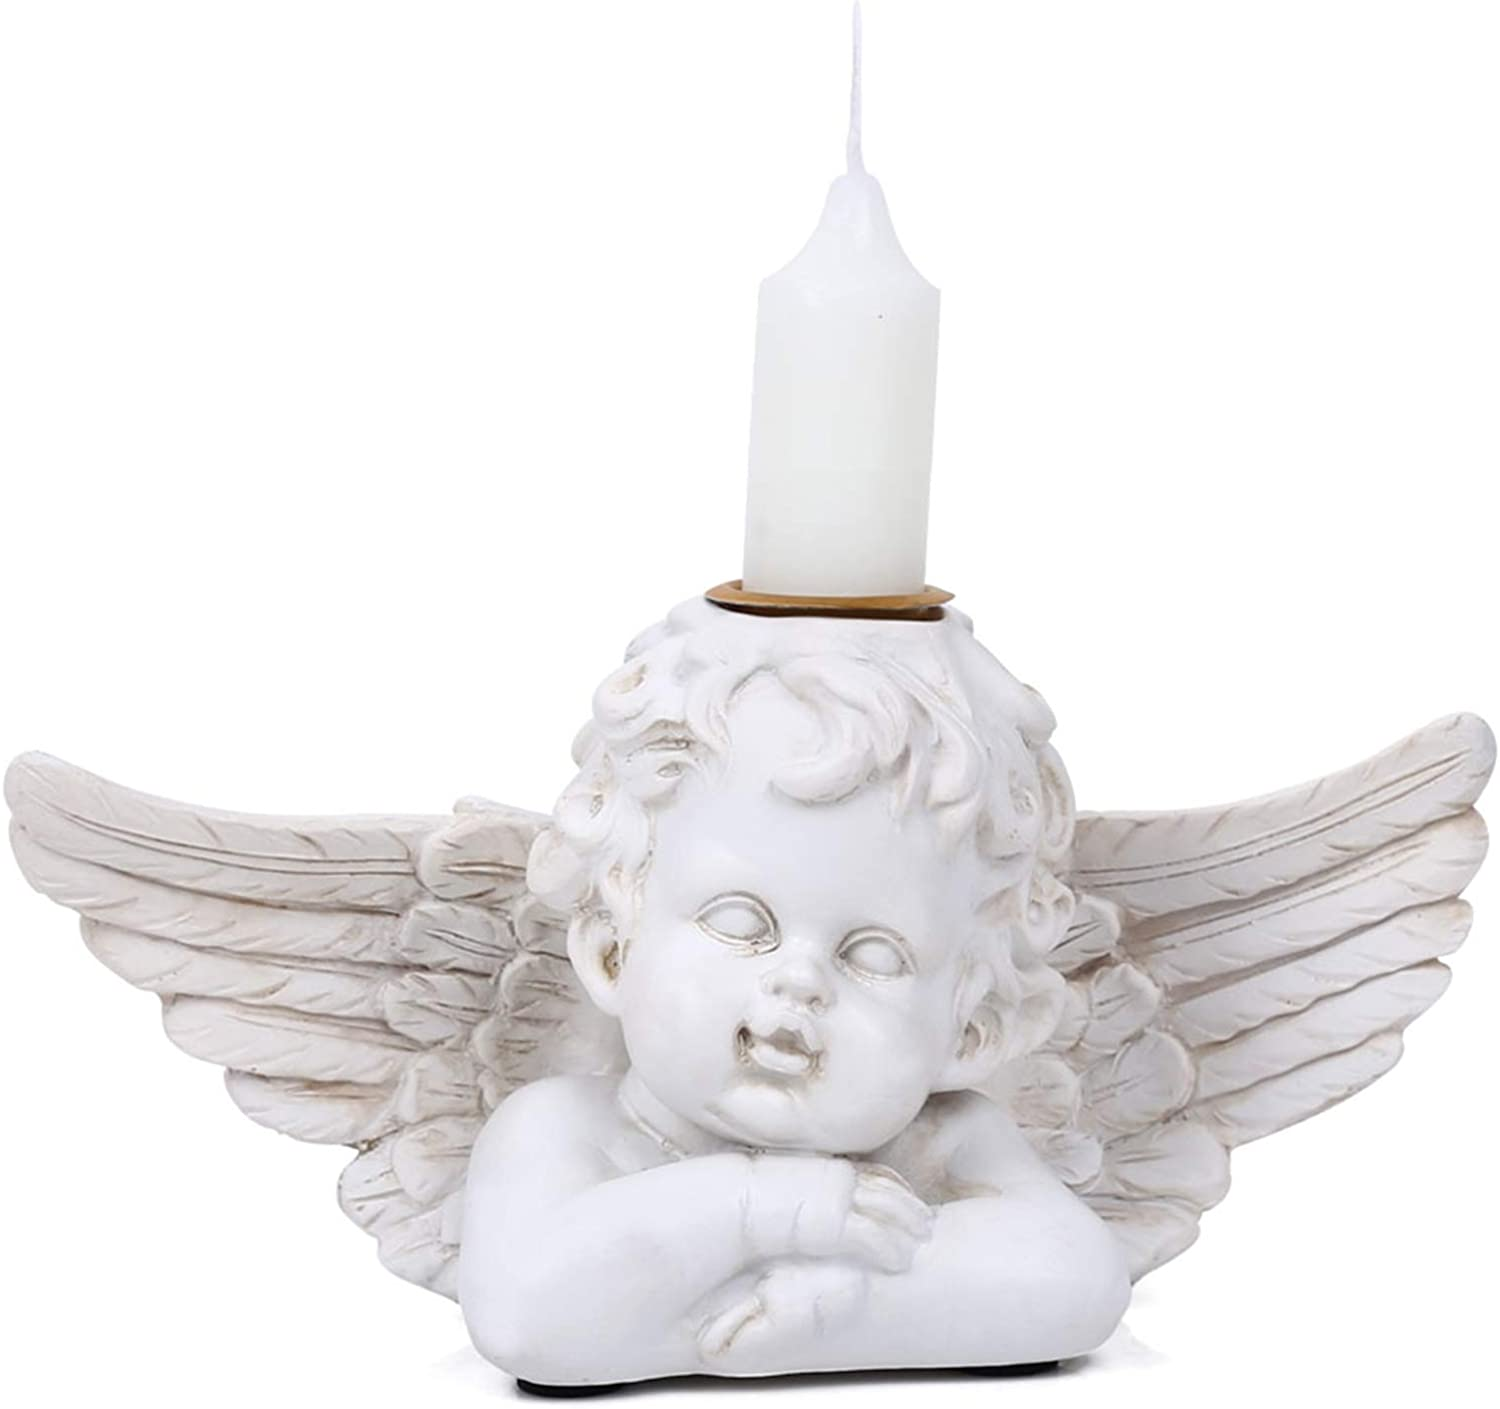 Angel Candle Holders Statue - Decorative Candlesticks Home FigurineSculptureTable Decor for Fireplace, Living or Dining Room Table, Gifts